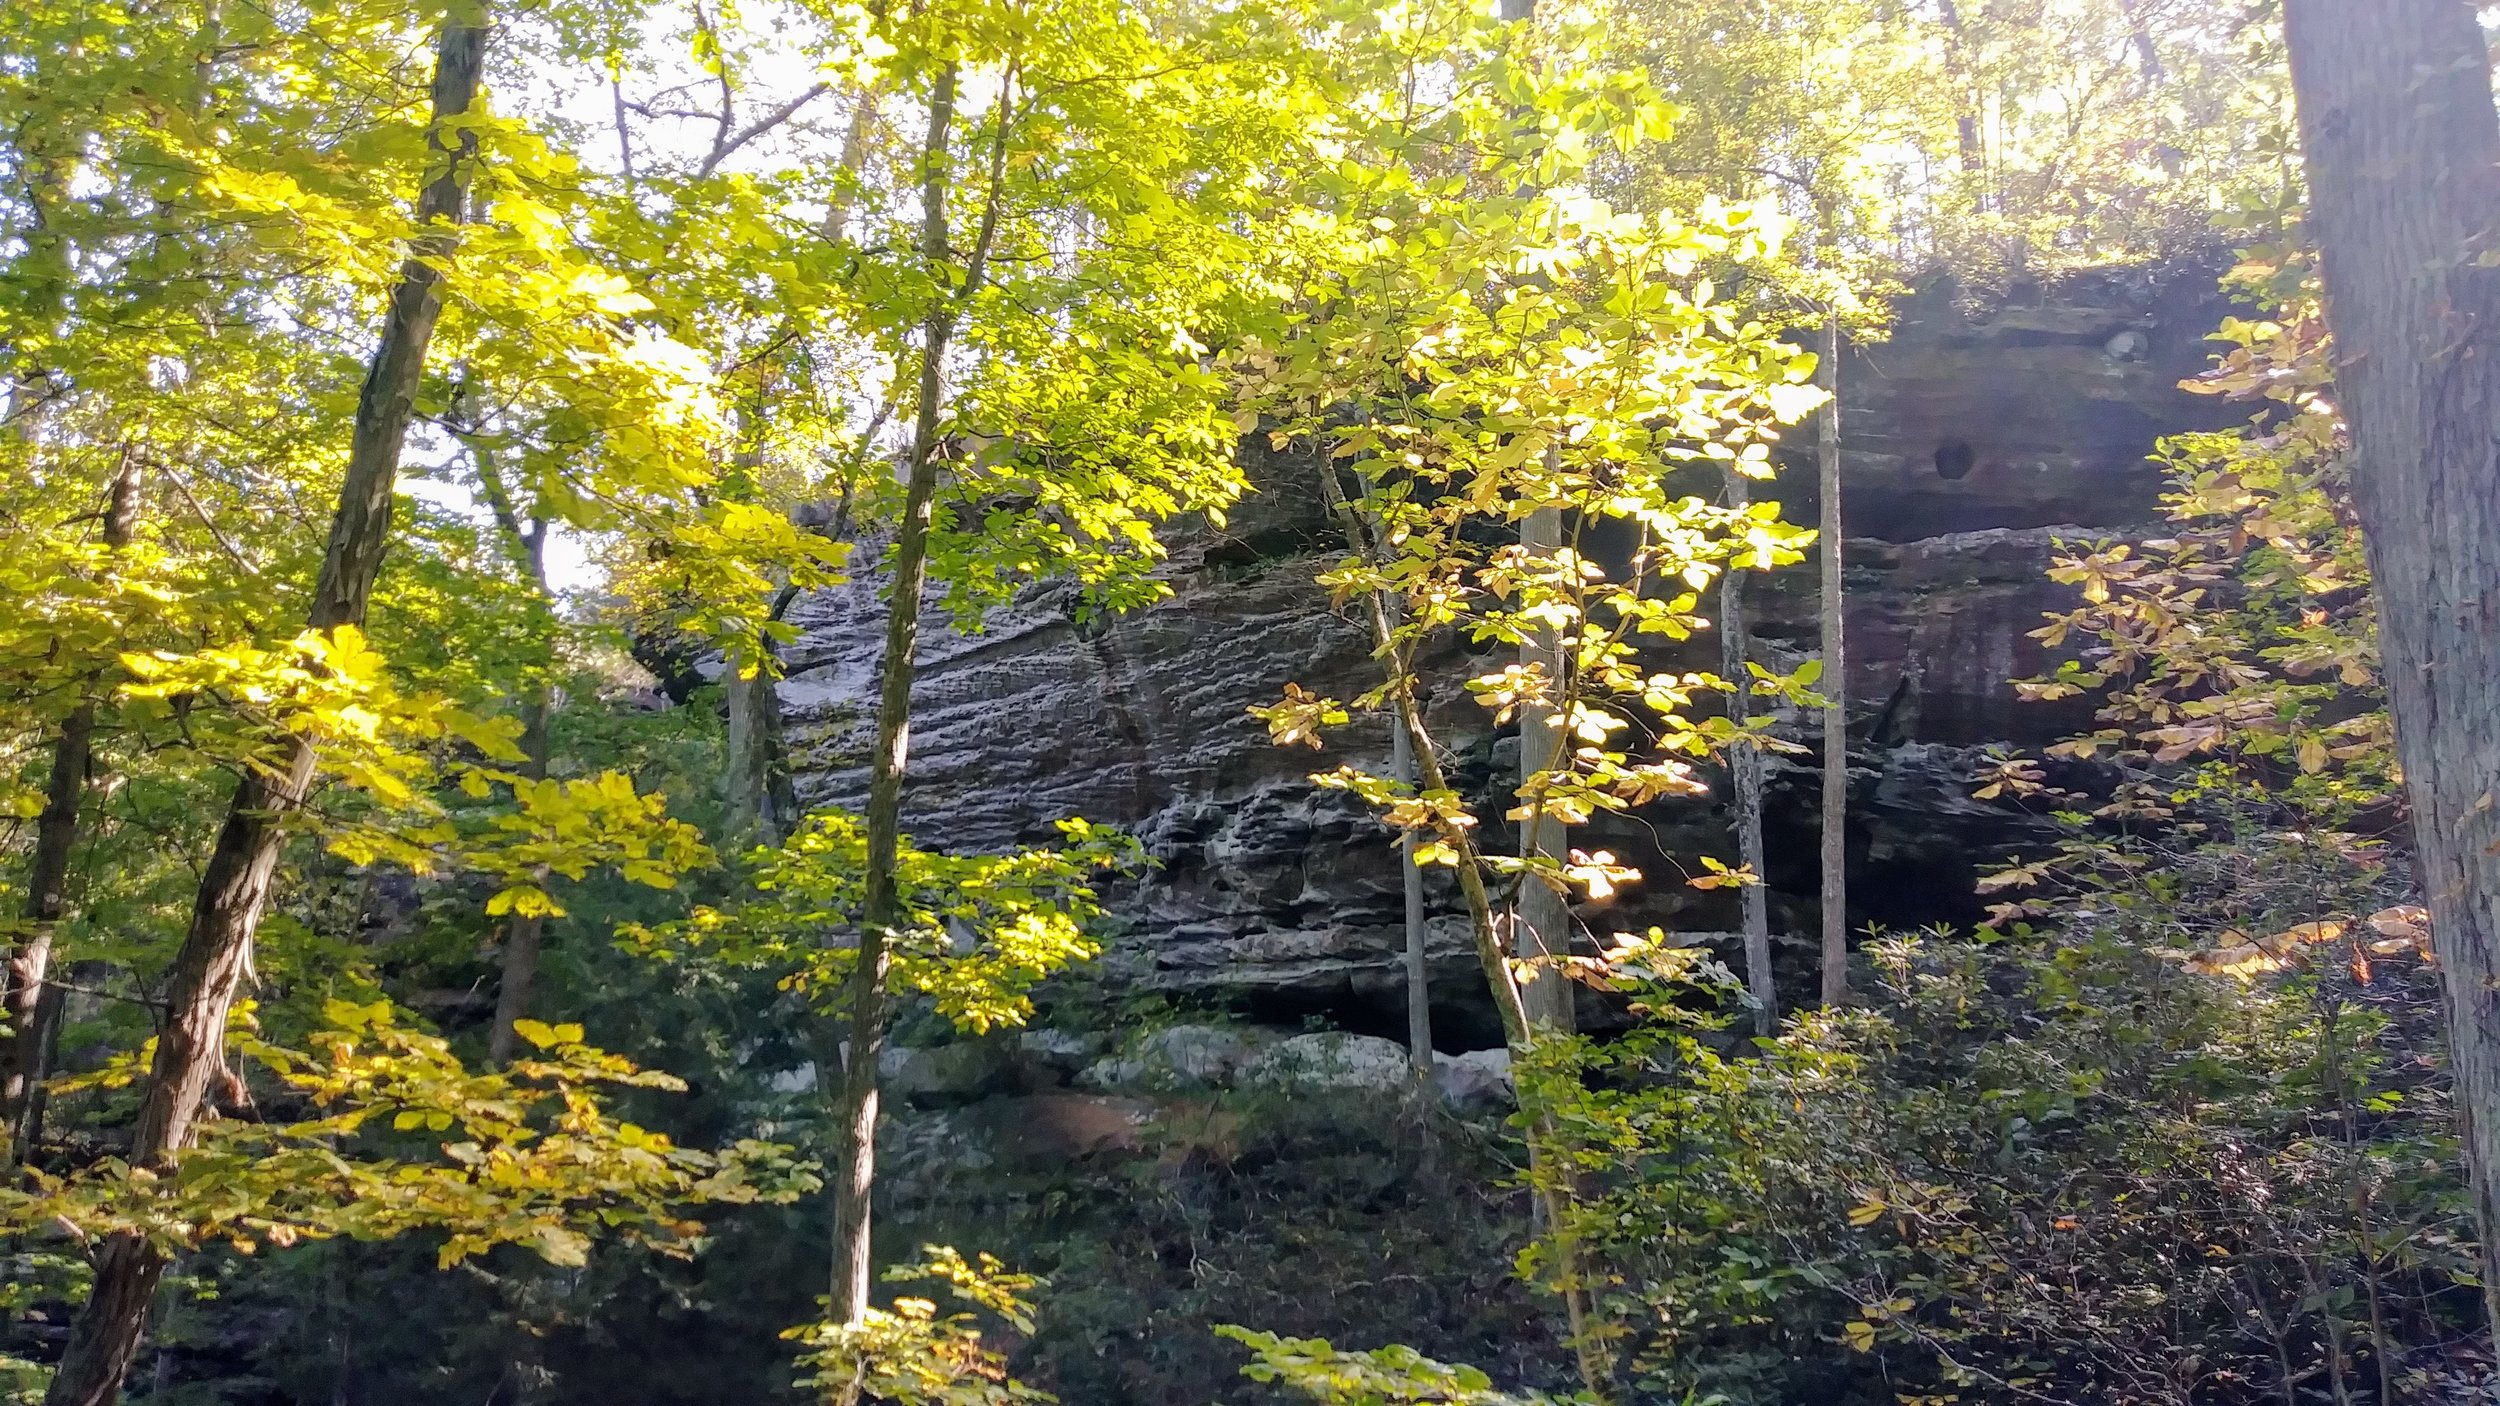 A rock outcropping on the initial descent on the Double Arch Trail.